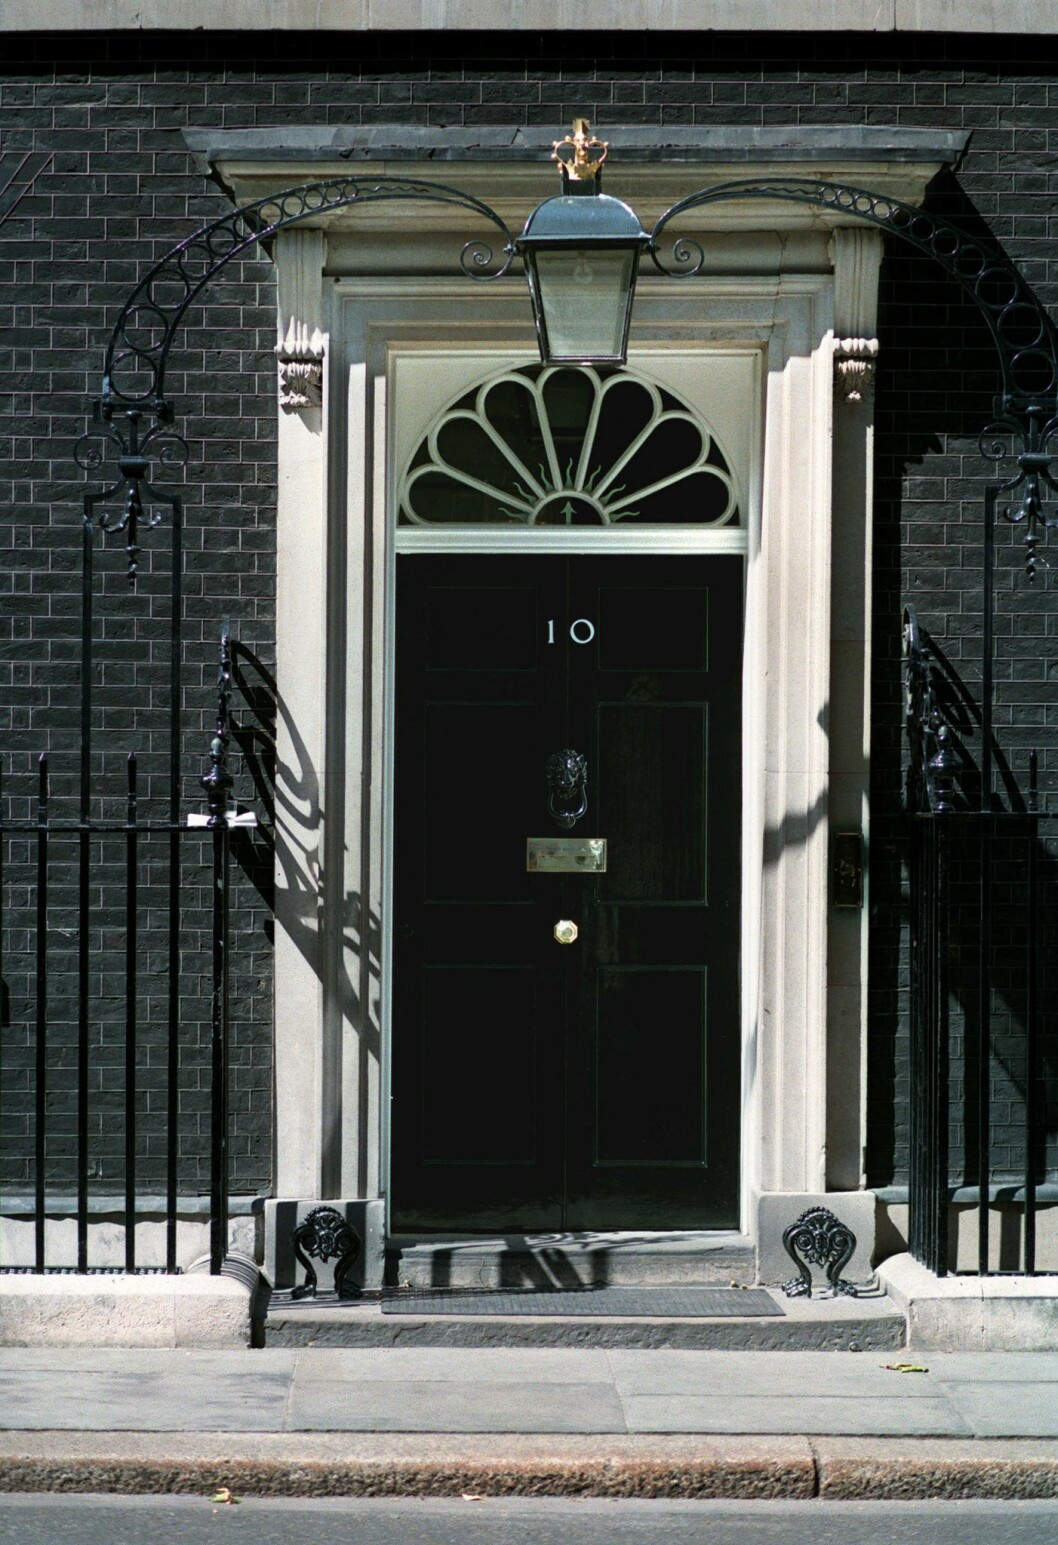 10 Downing Street i London.